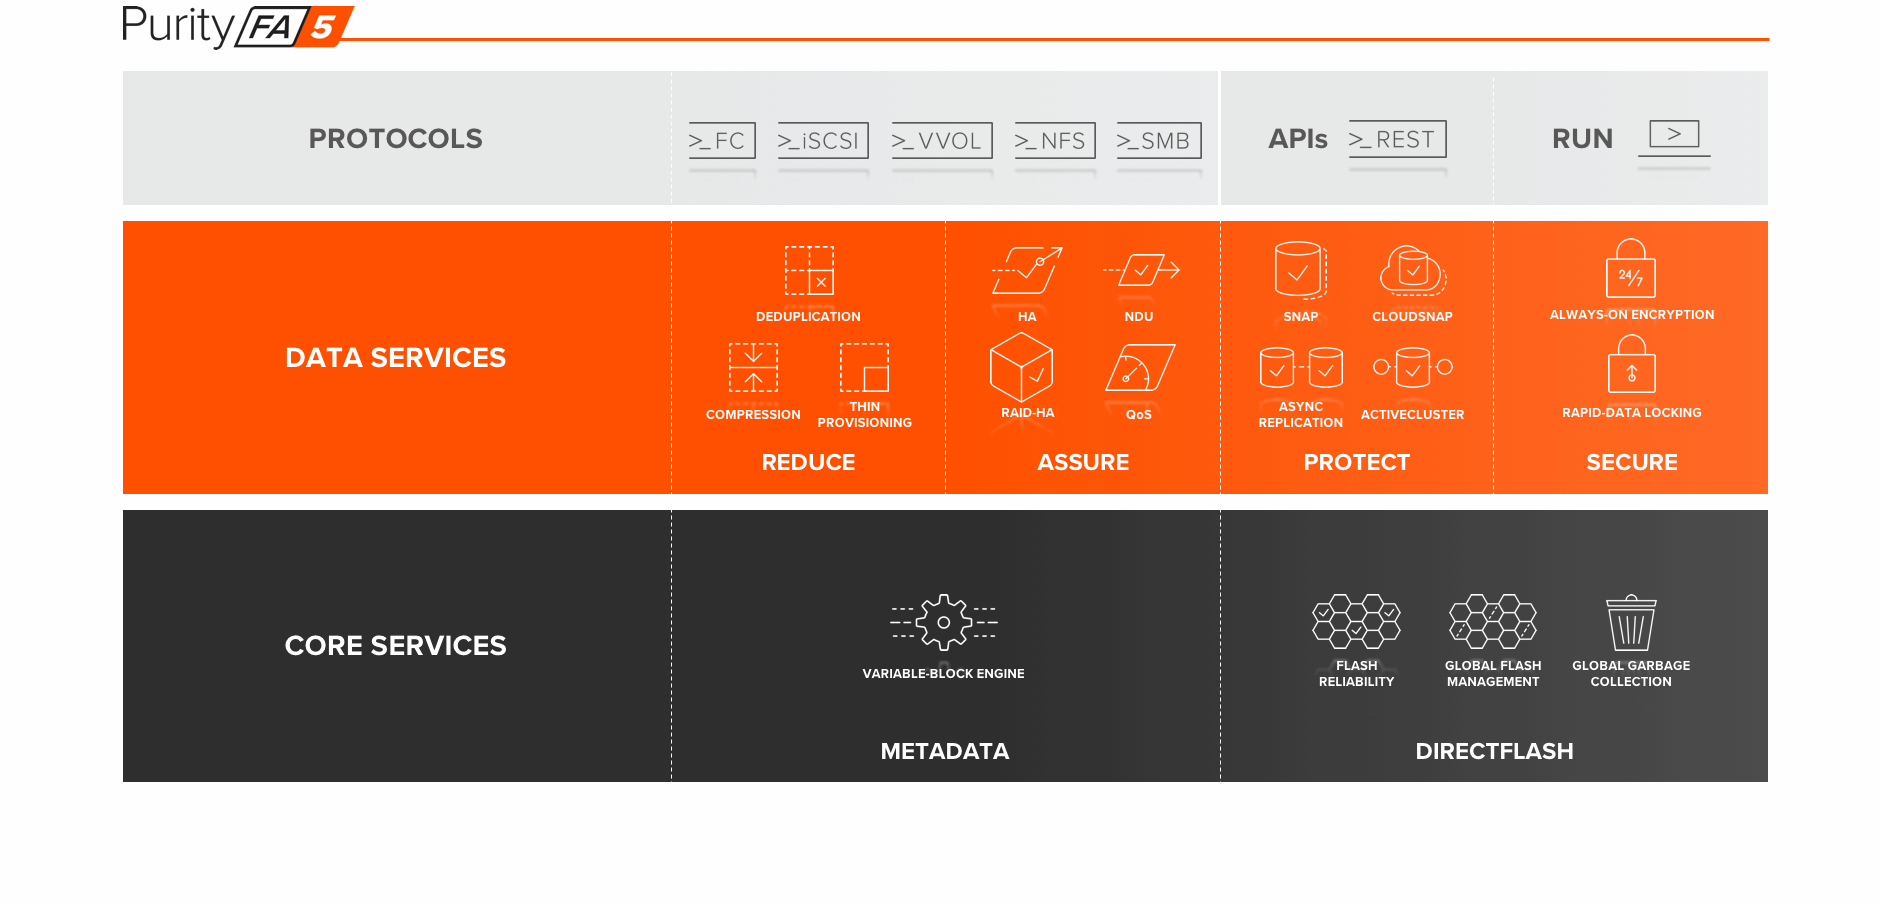 All-Flash Arrays Powered By Purity